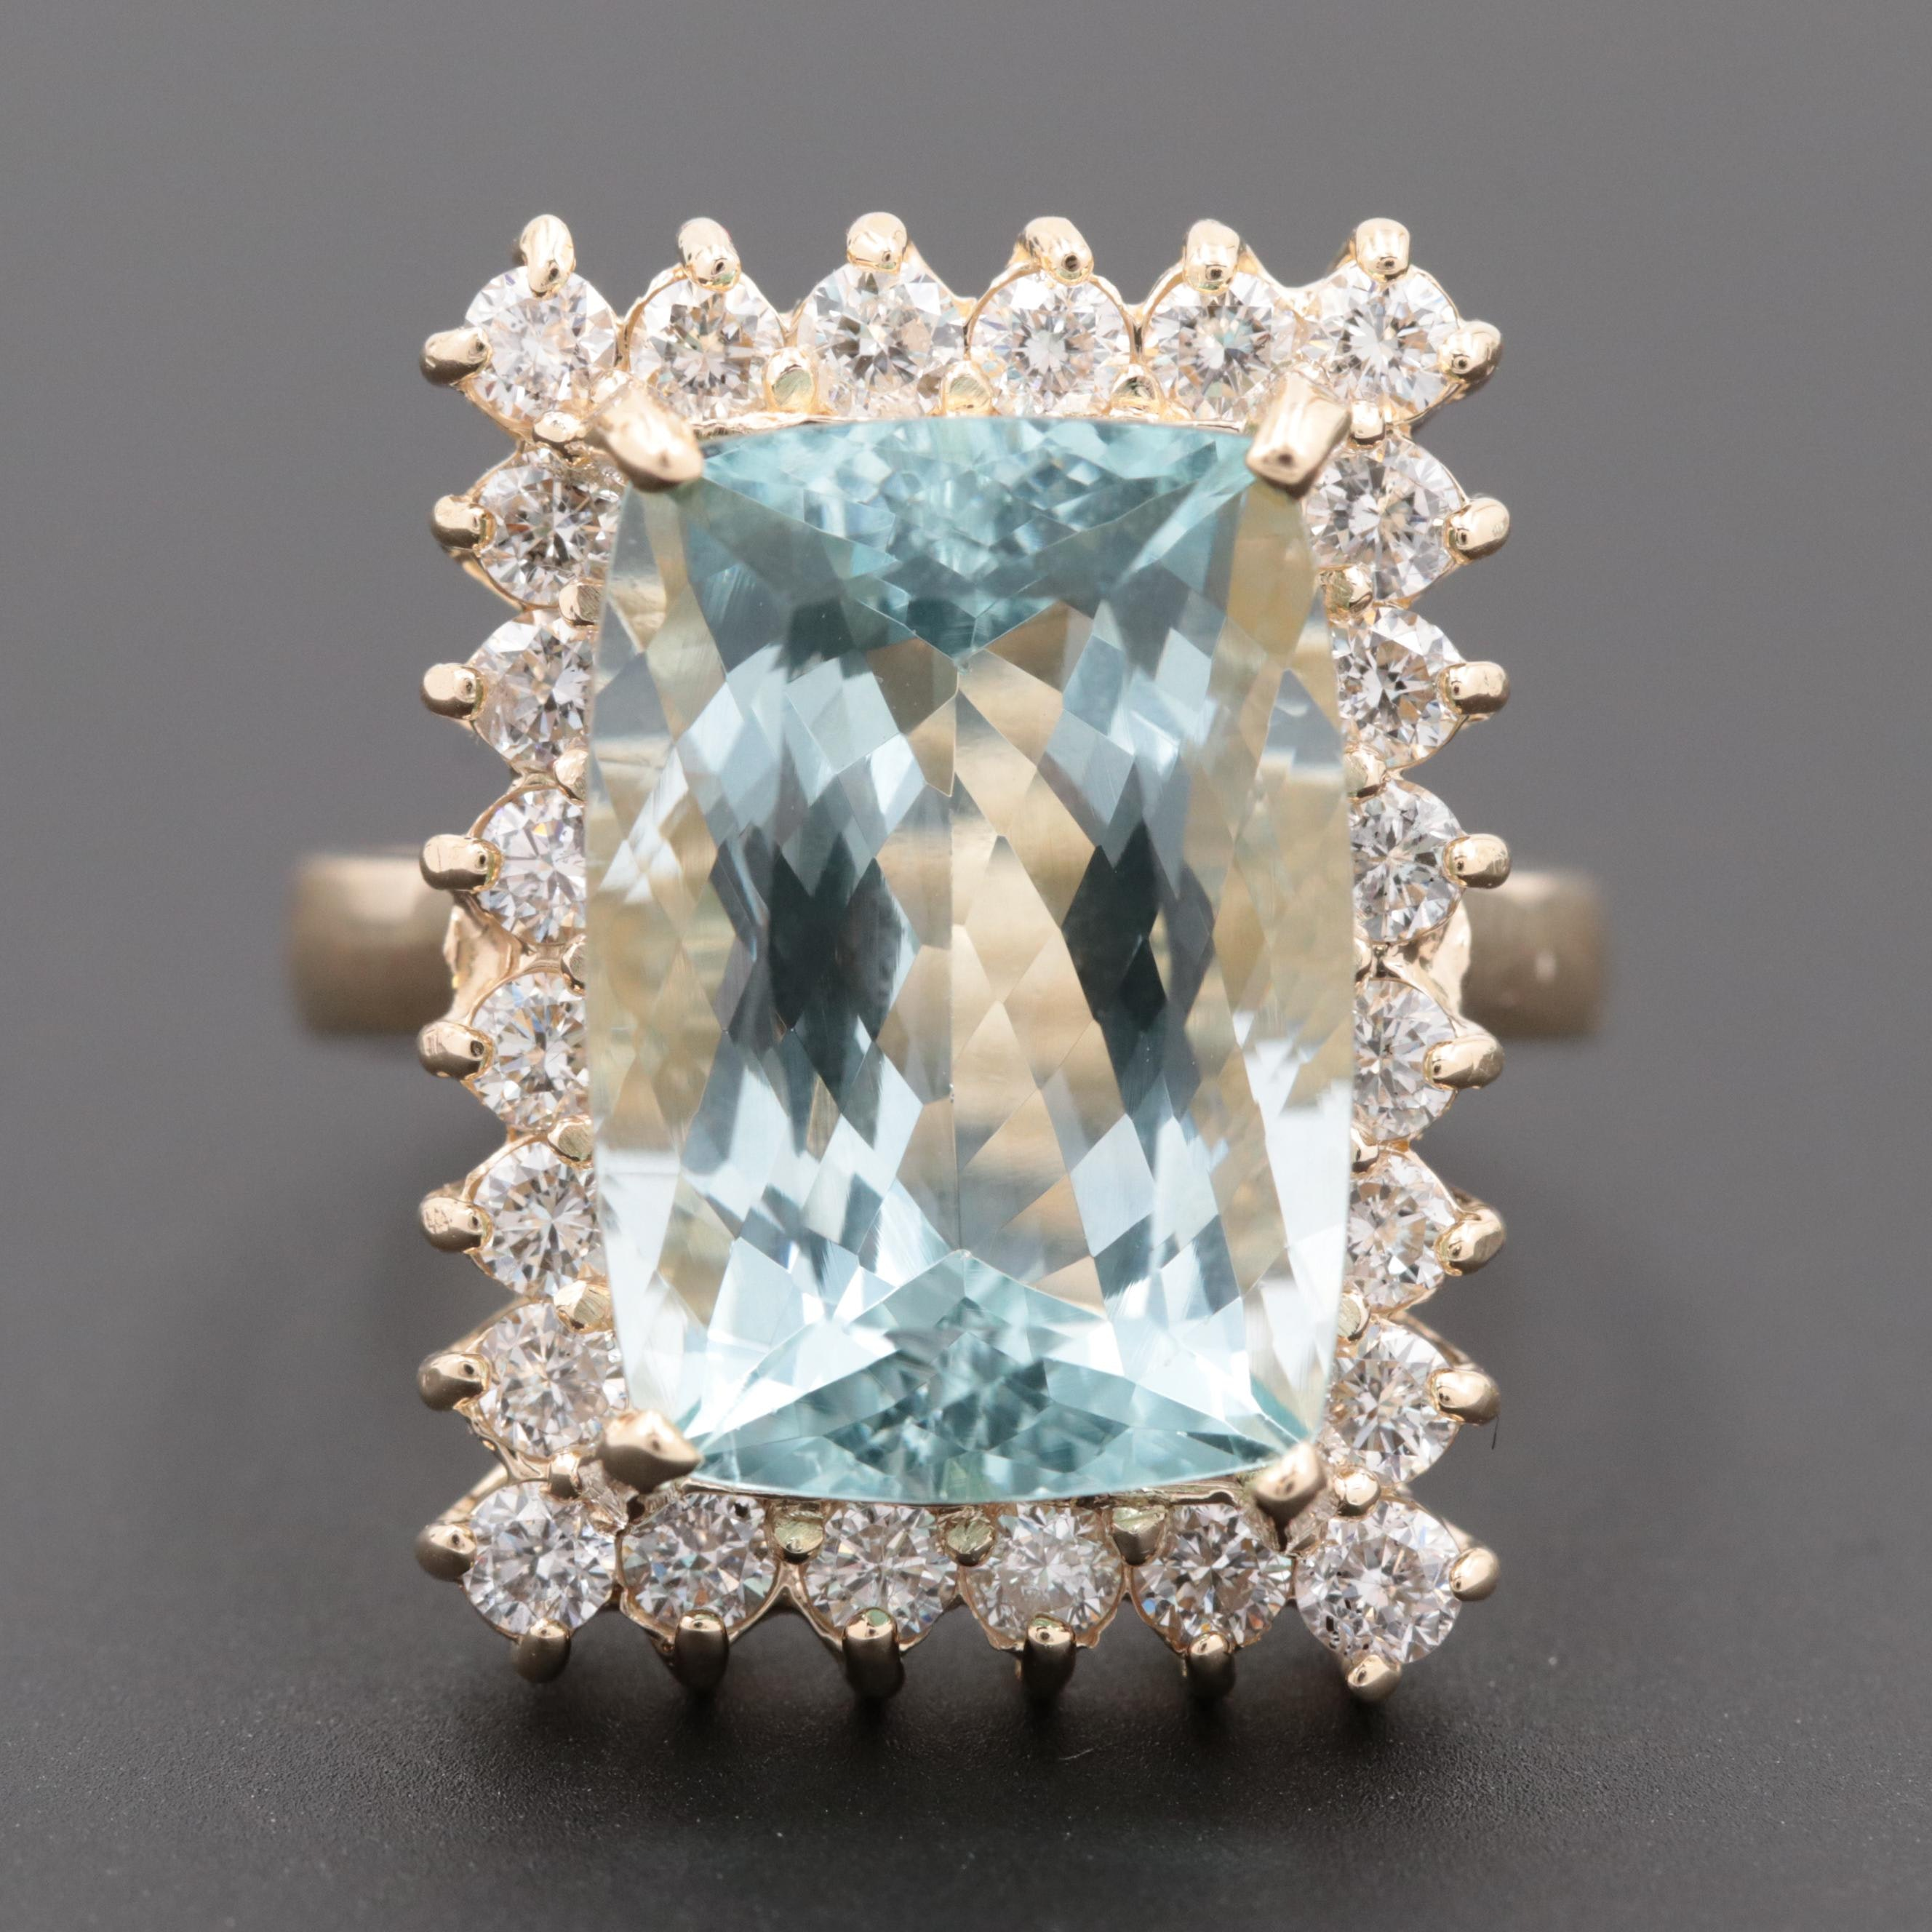 14K Yellow Gold 7.95 CT Aquamarine and Diamond Halo Ring